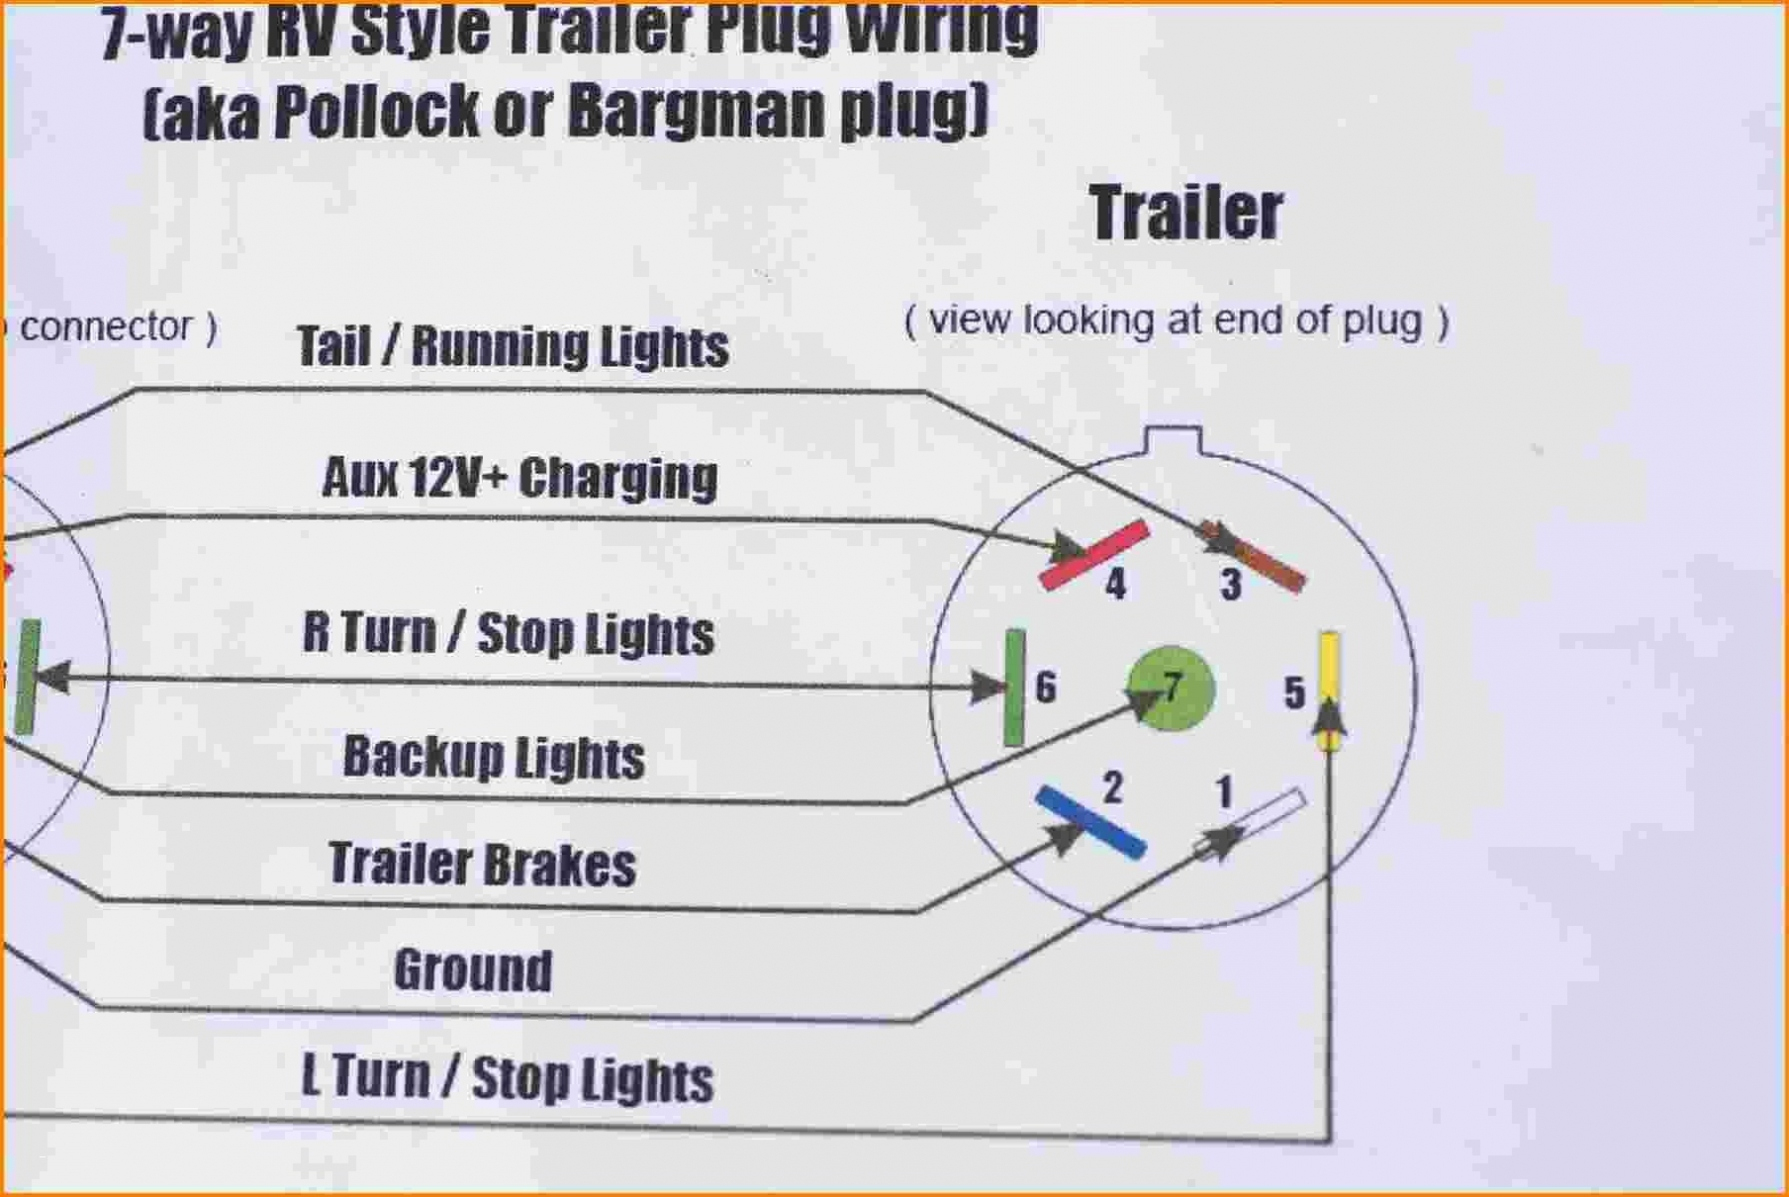 6 Round Trailer Plug Wiring Diagram | Manual E-Books - 6 Round Trailer Wiring Diagram